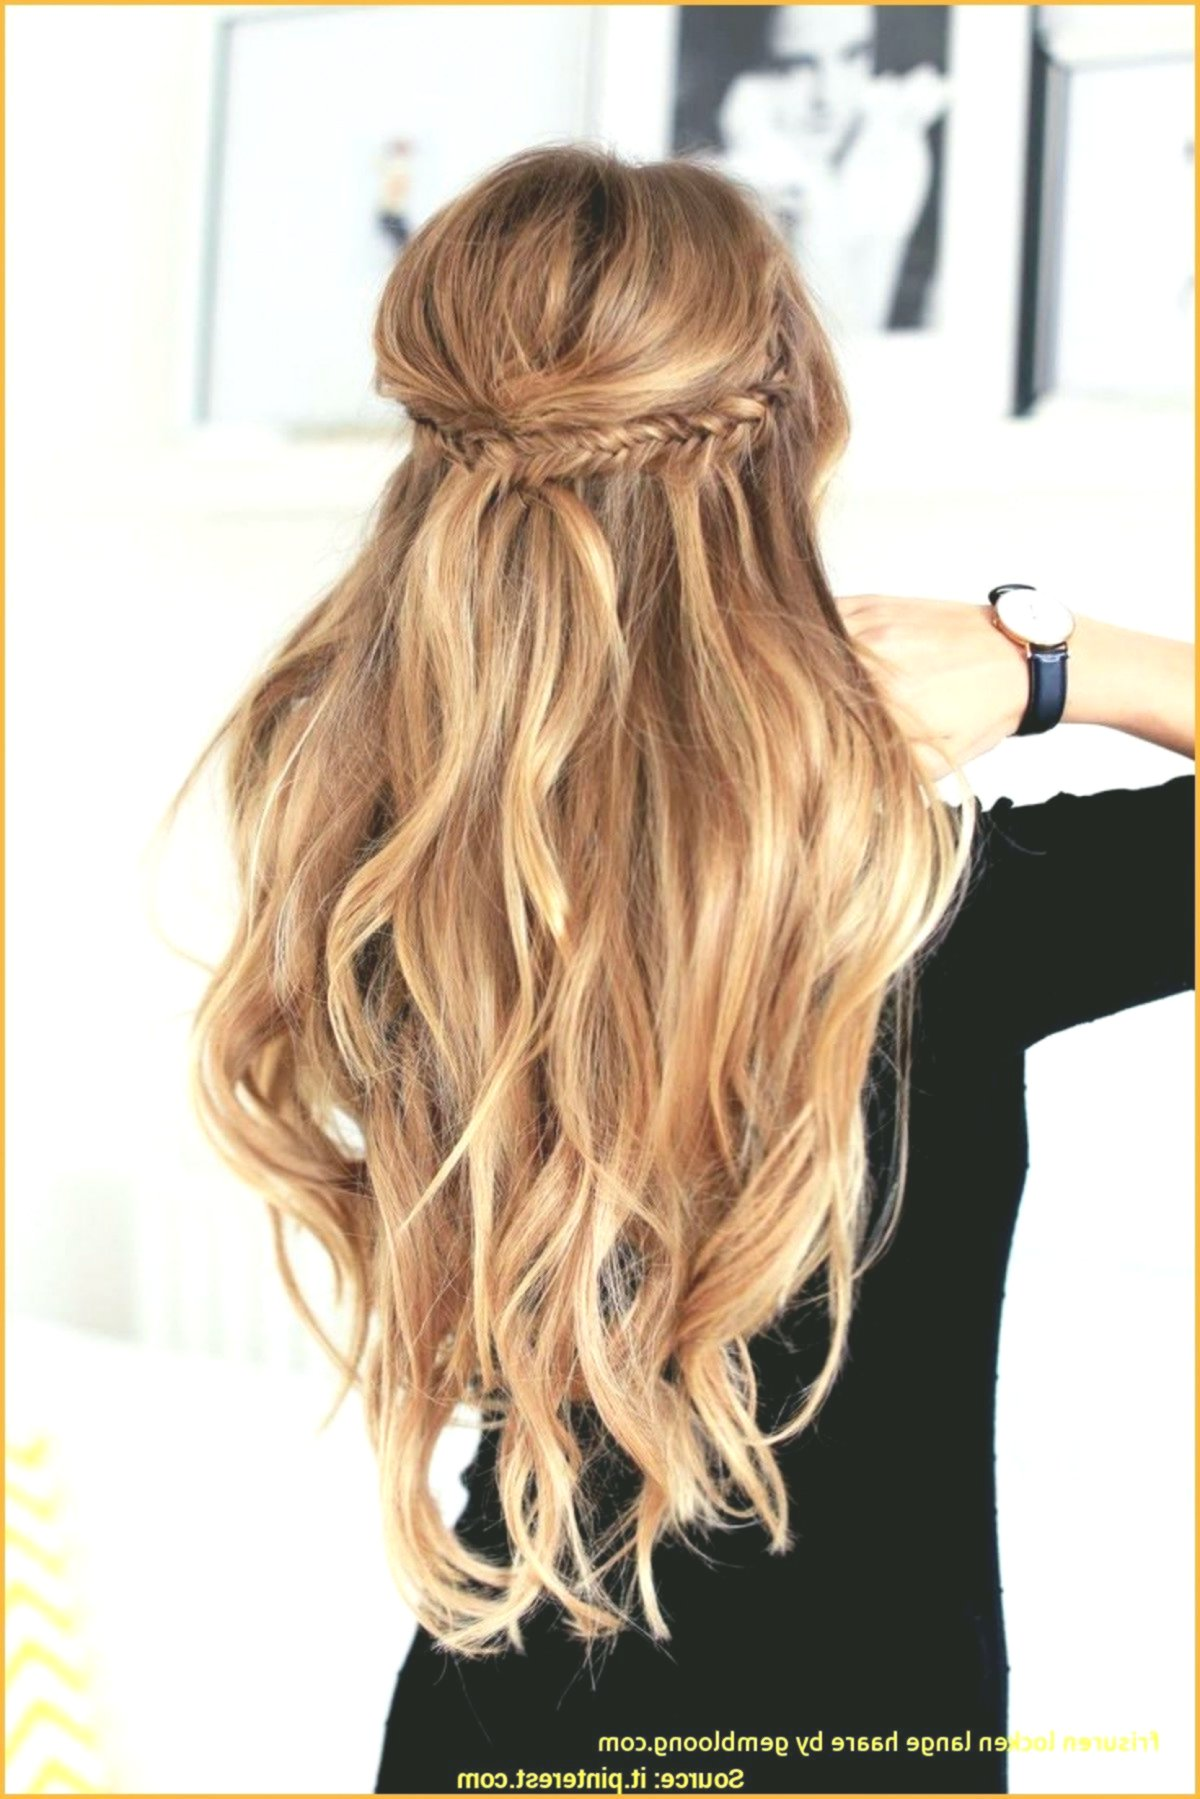 finest hairstyles half length curls gallery-Best Of hairstyles half-length curls collection